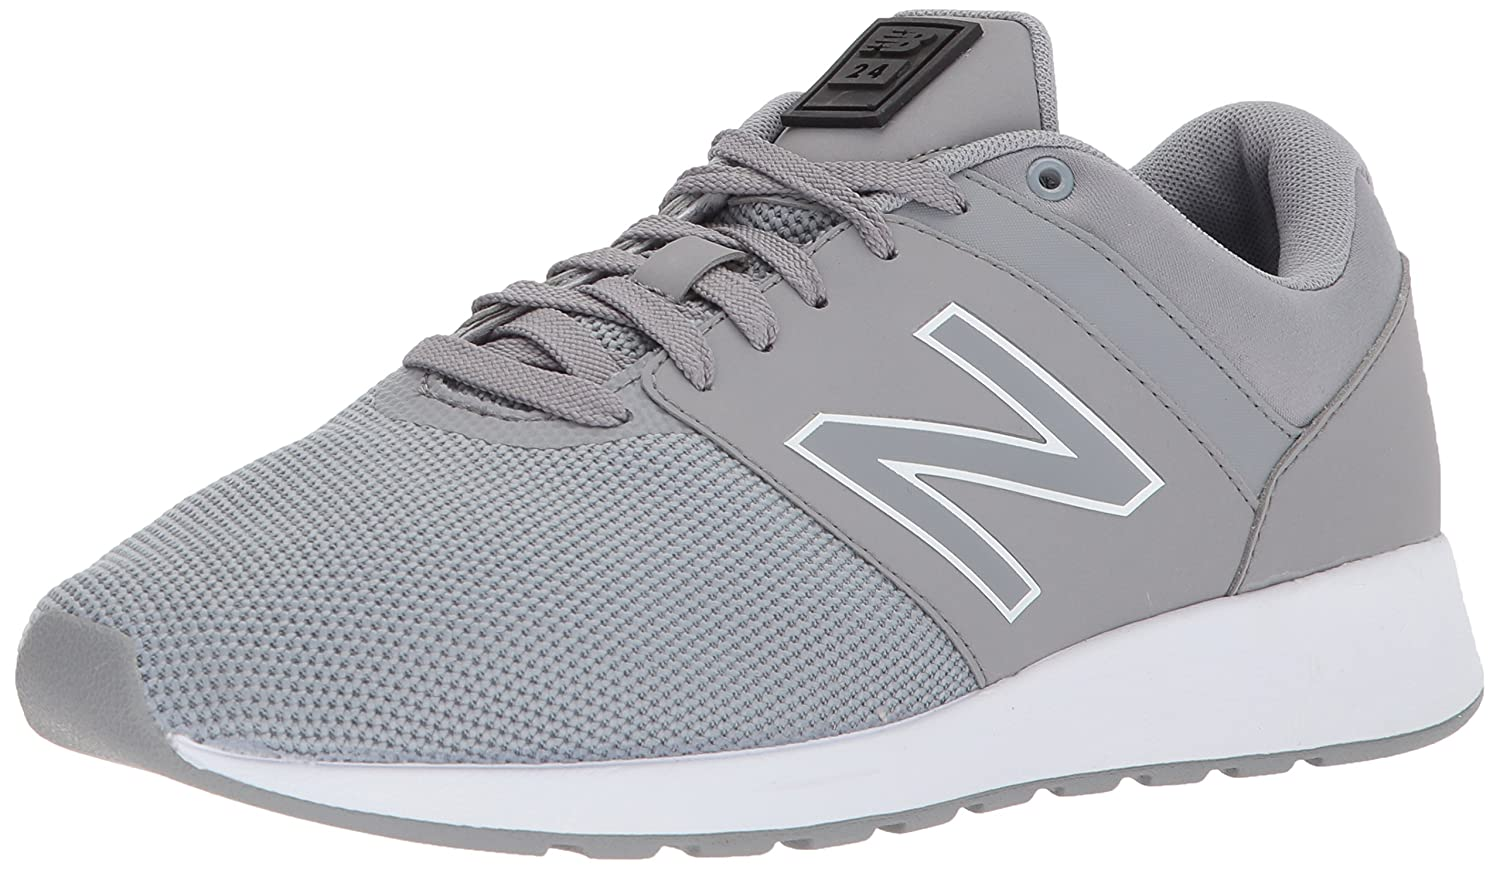 New Balance Men's 24v1 Sneaker 9.5 4E US|Steel